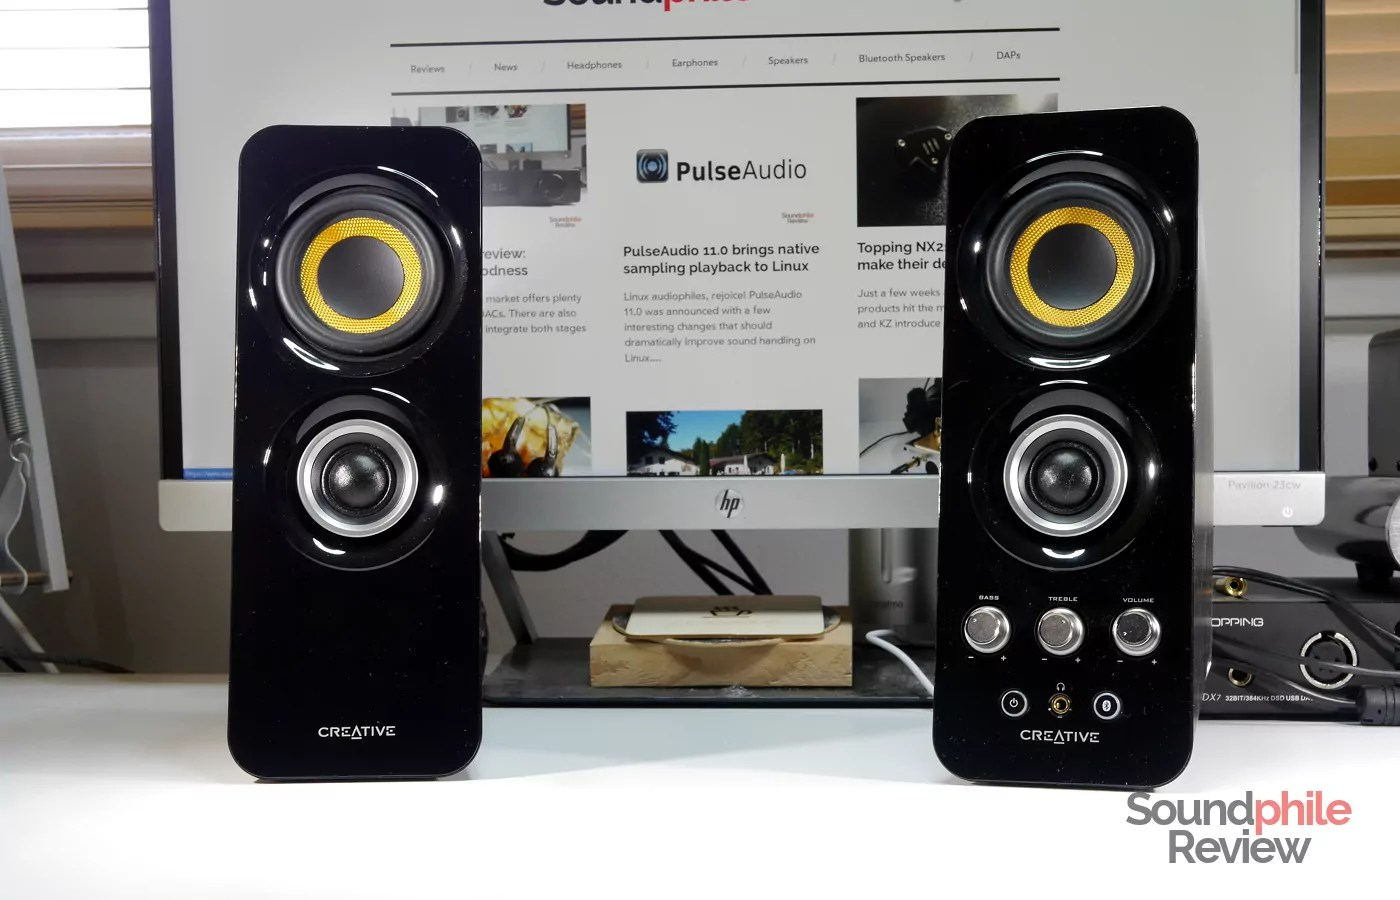 Creative T30 Wireless review